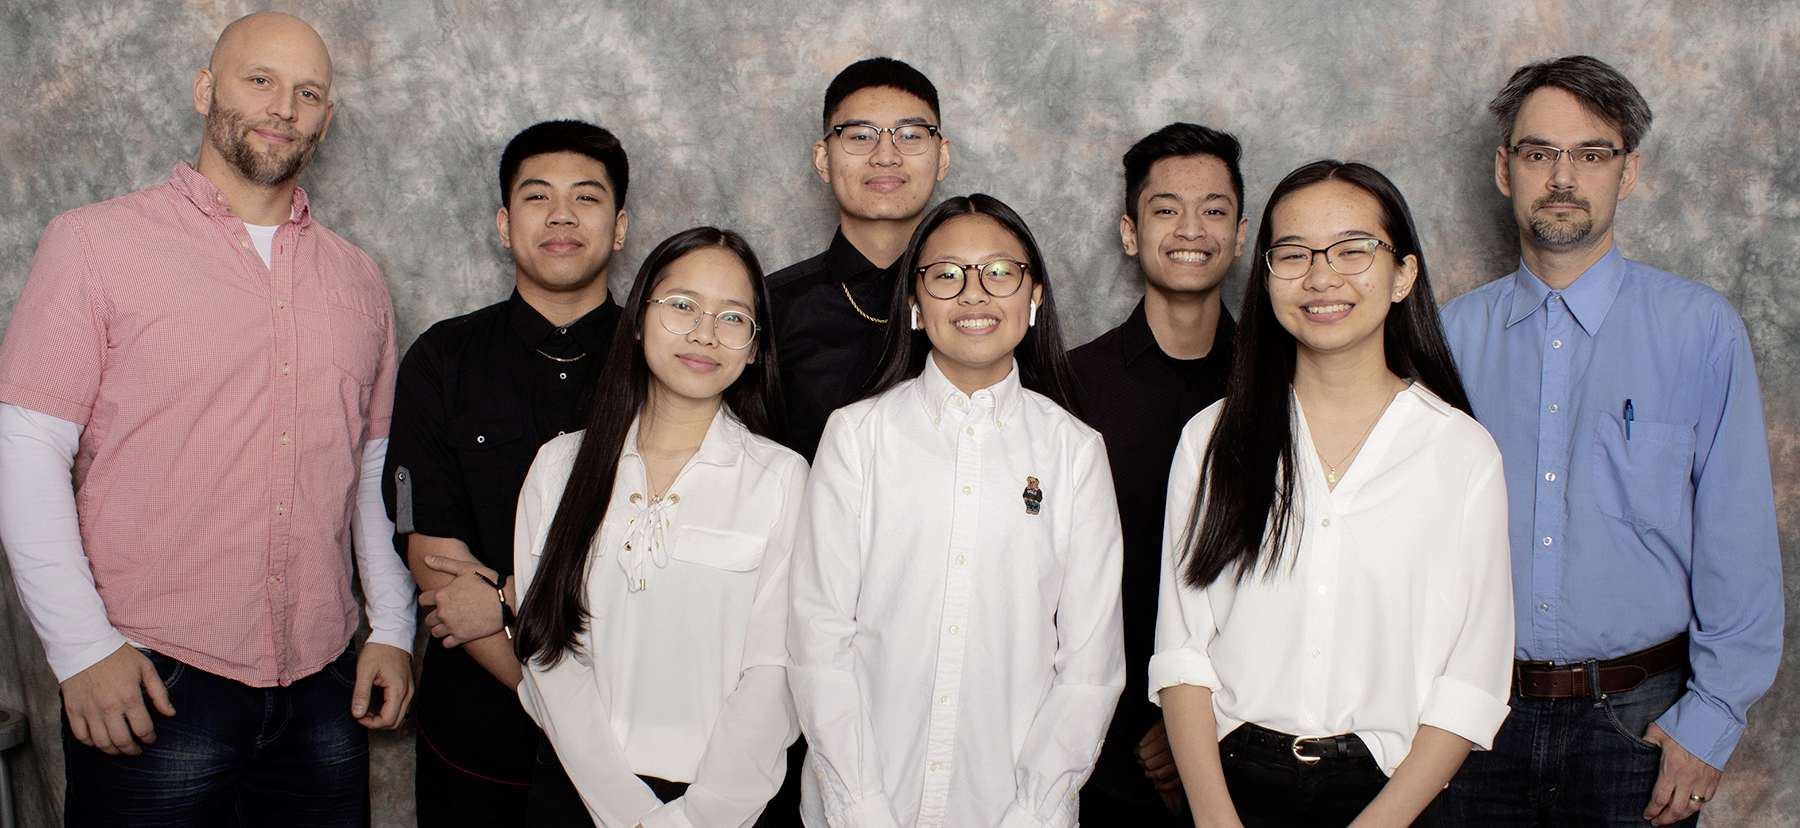 (Left to right; back to front) Members of the Sisler High School DDR1 team: coach Charles Bazilewich, Aden Borja Ho, John Bulaong, Romeo Hizon, coach Paul Buskell, Kyzha Emnacen, Ronah Rafal and Kaye Mendoza.